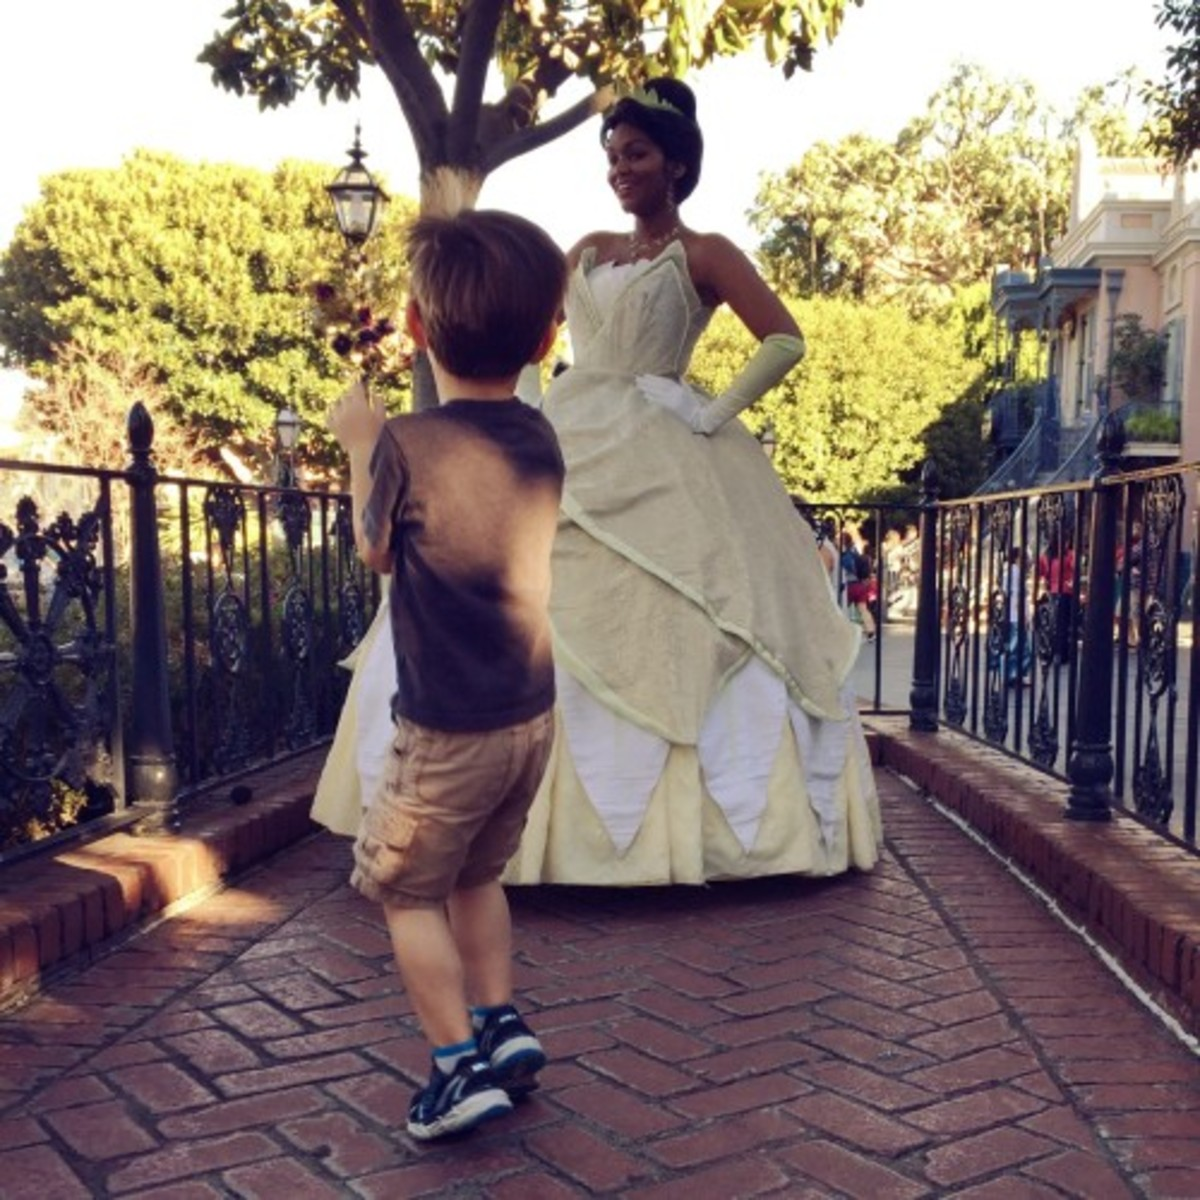 10 Must Capture Family Vacation Photos